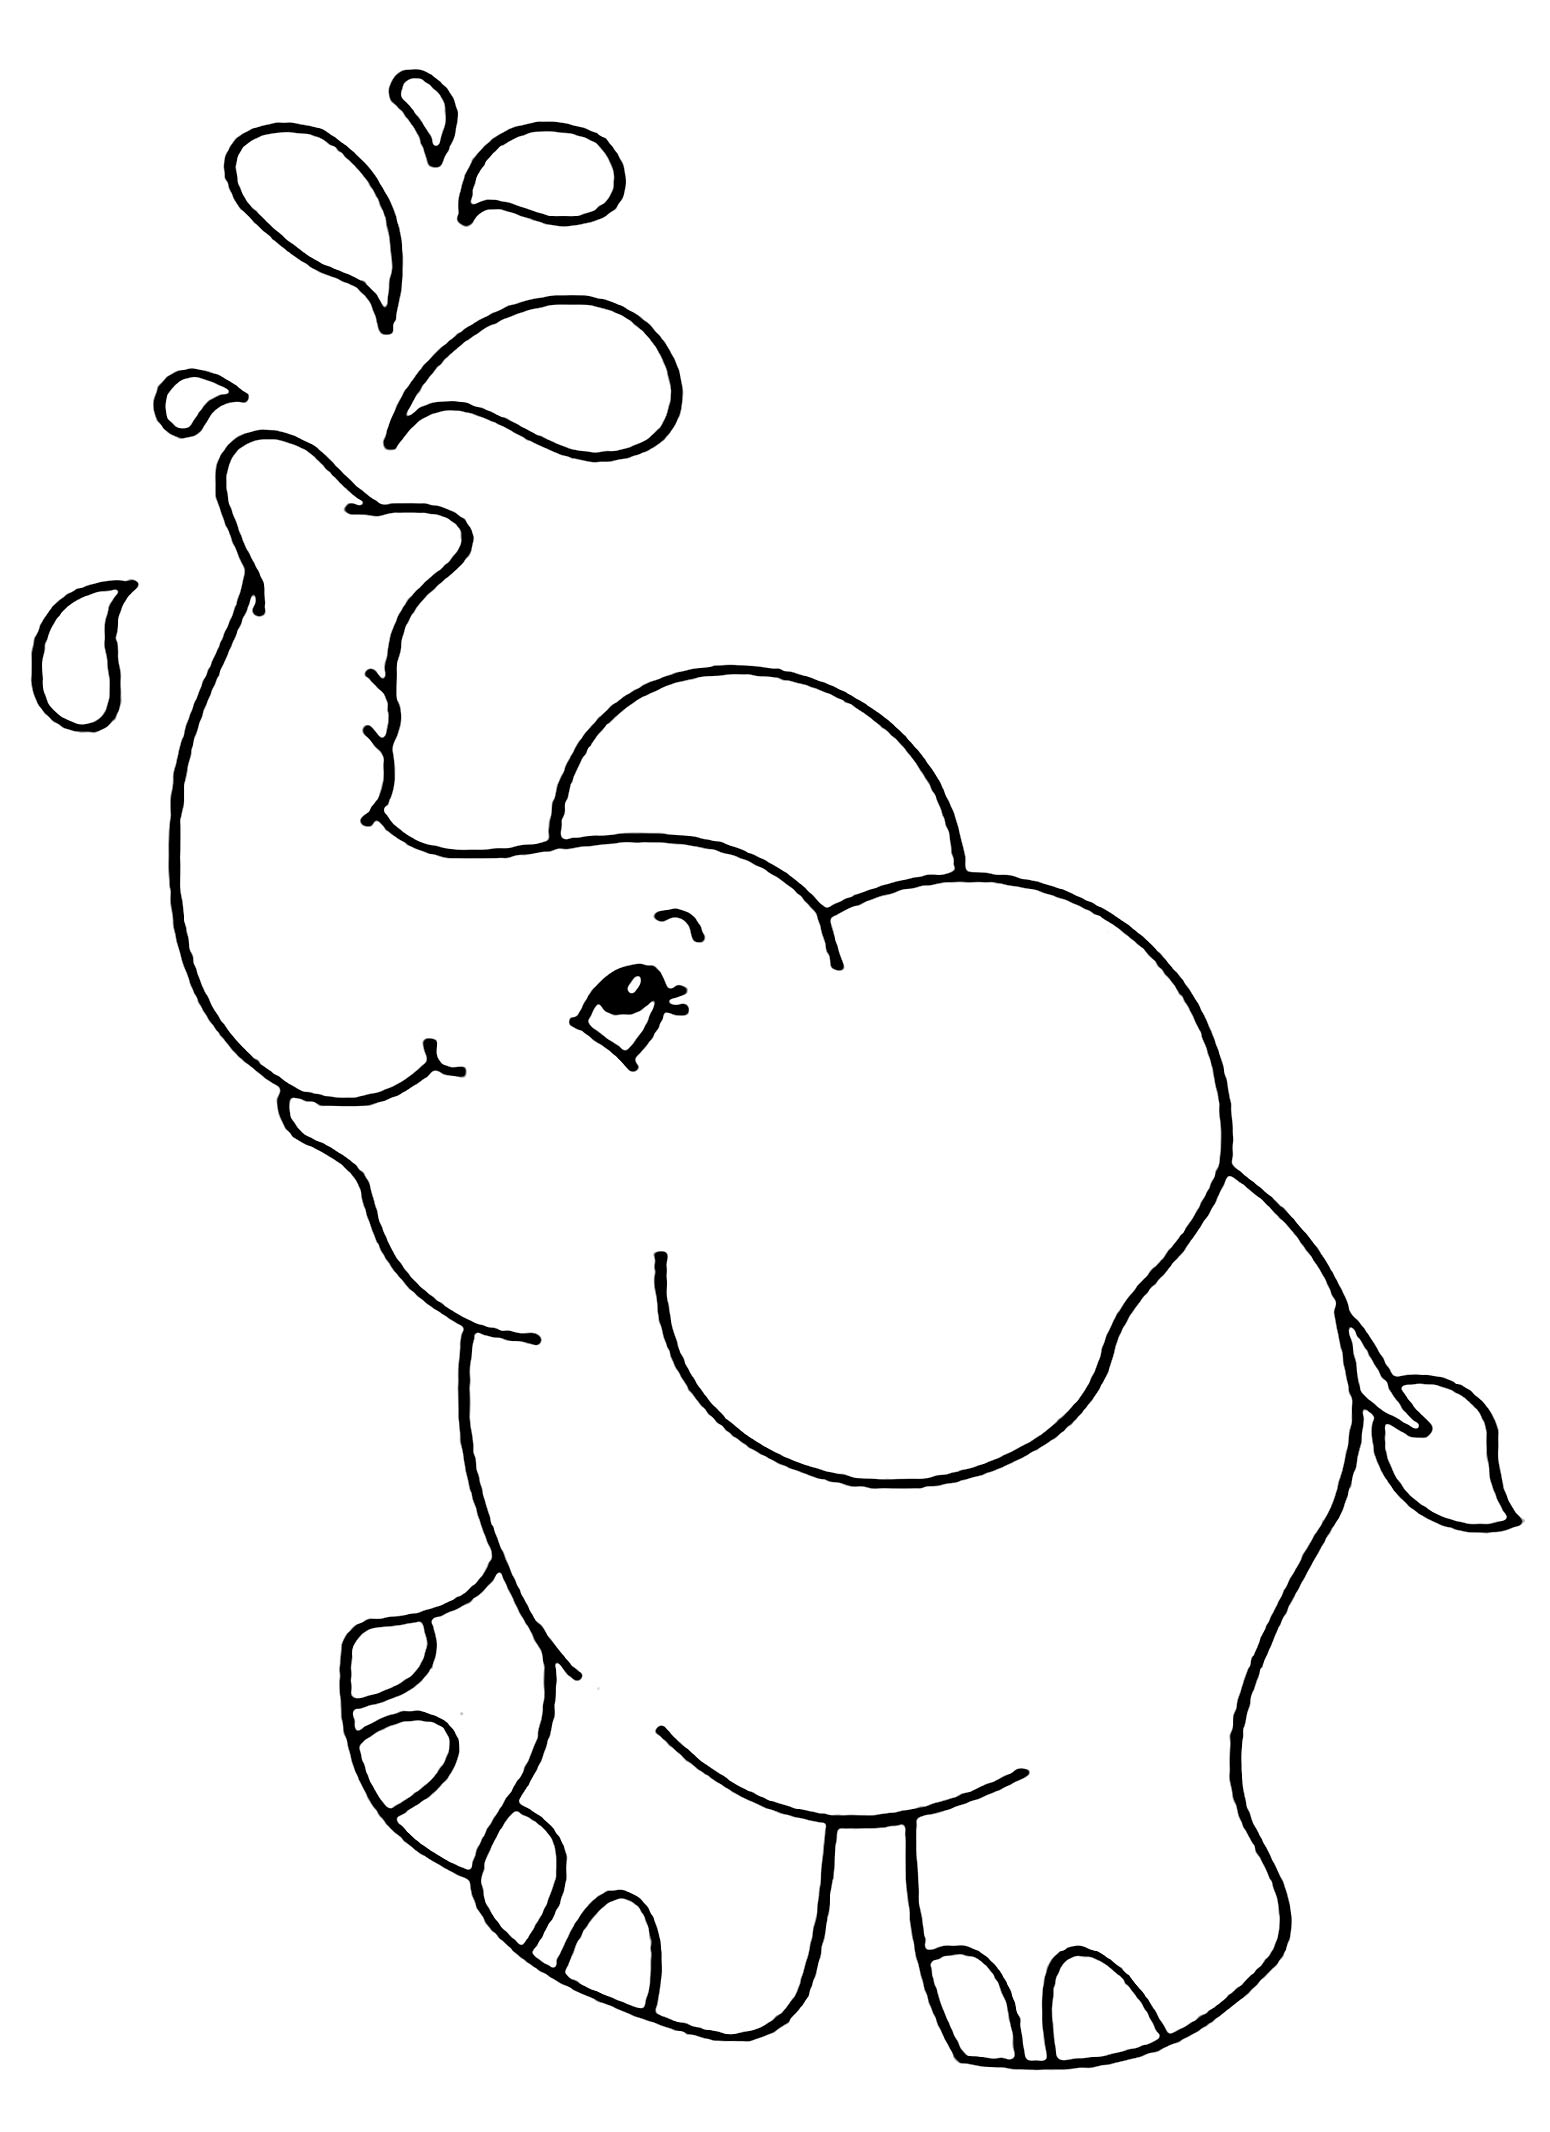 coloring book elephant images elephant coloring pages for adults best coloring pages book elephant images coloring